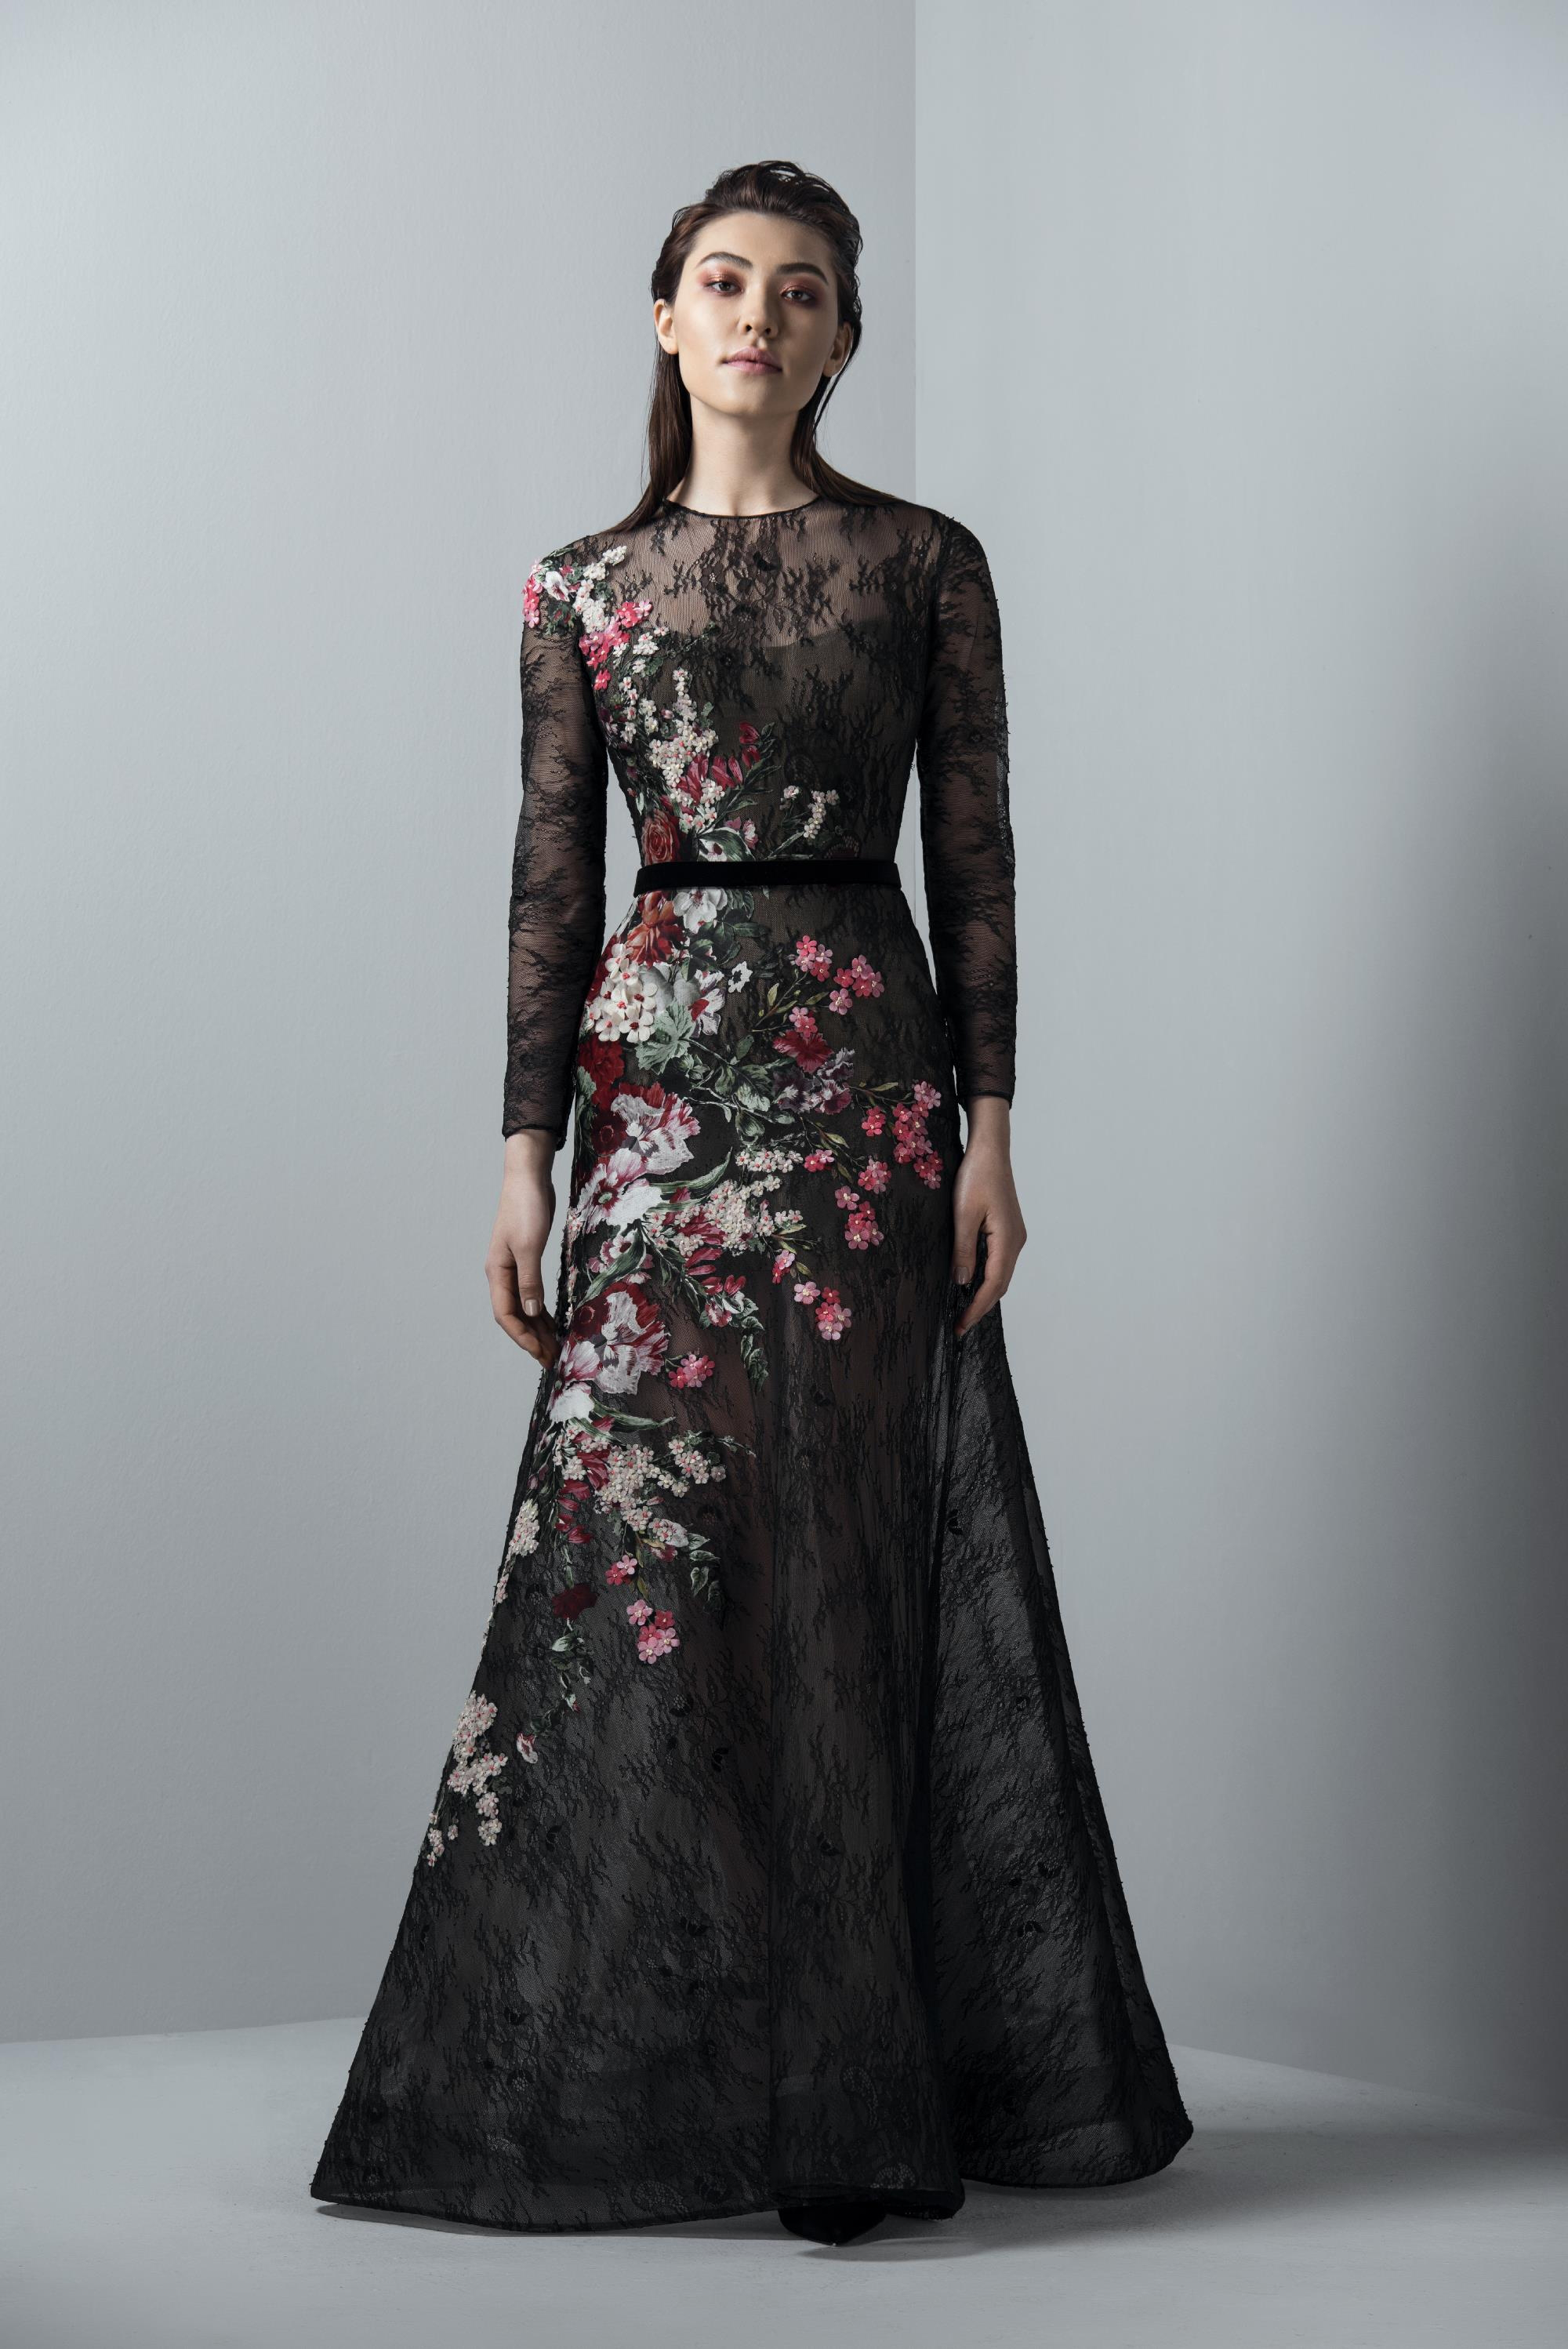 48249e4e07ee Saiid Kobeisy Sk By Black Long Sleeve Floral Evening Gown In Night Sky Black